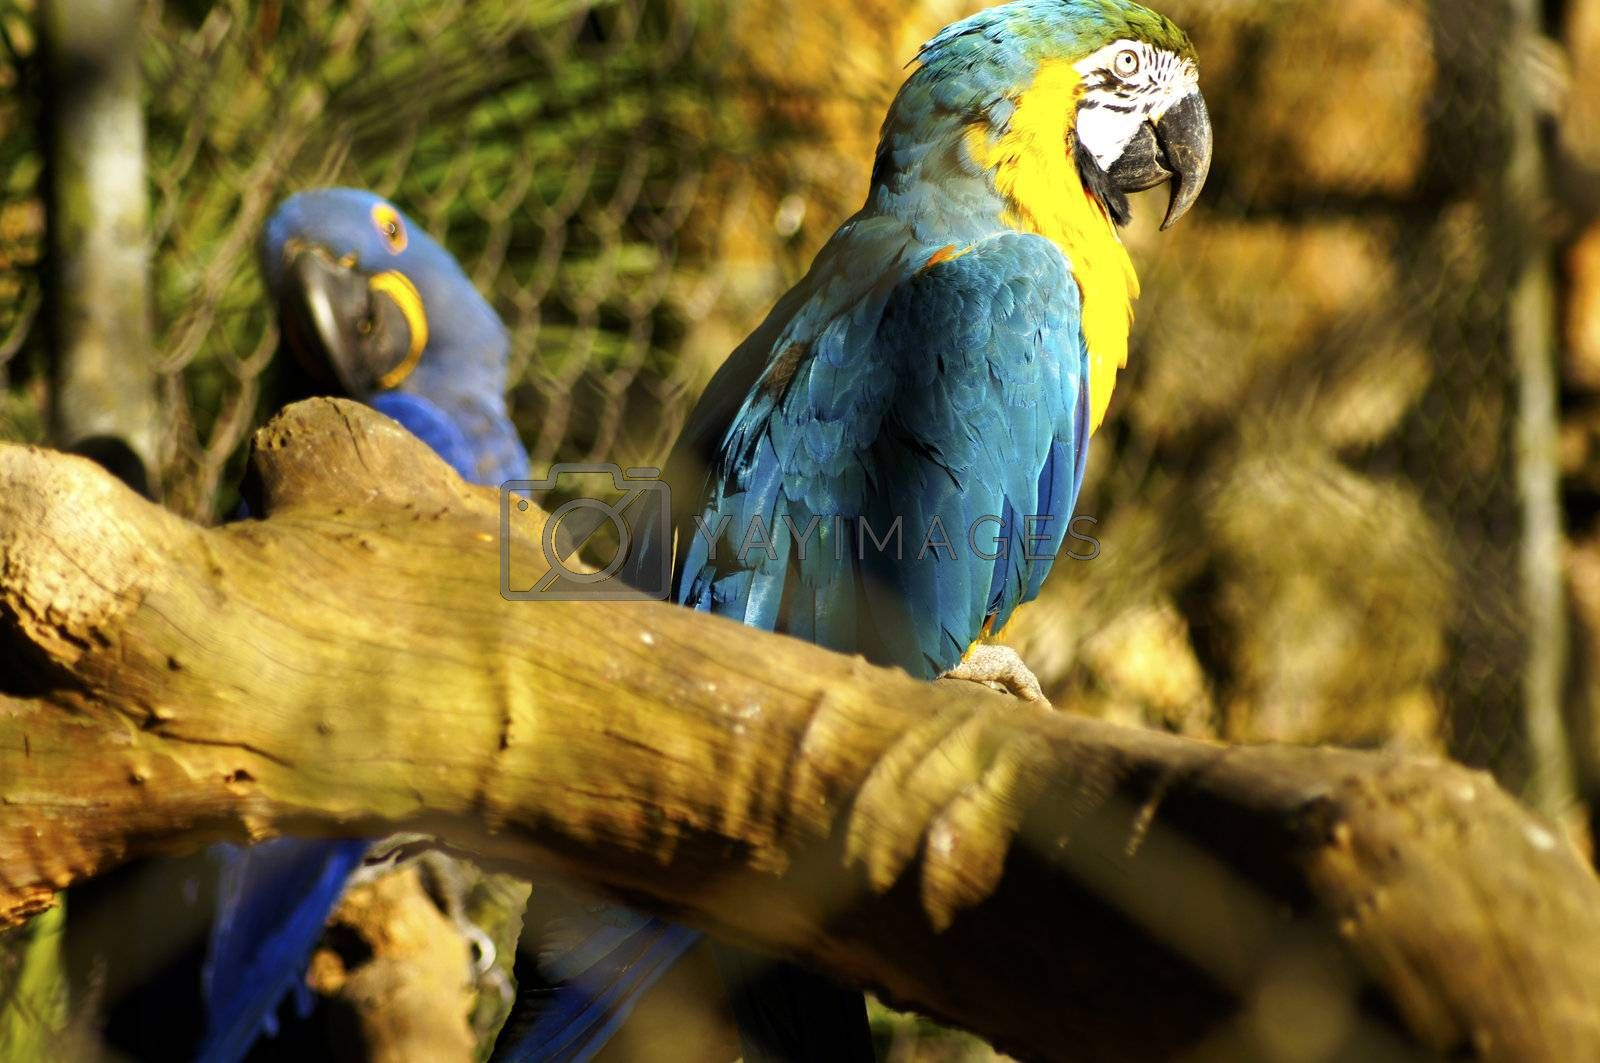 Brazil finds itself at an advantage before the biodiversity of birds that make their territory